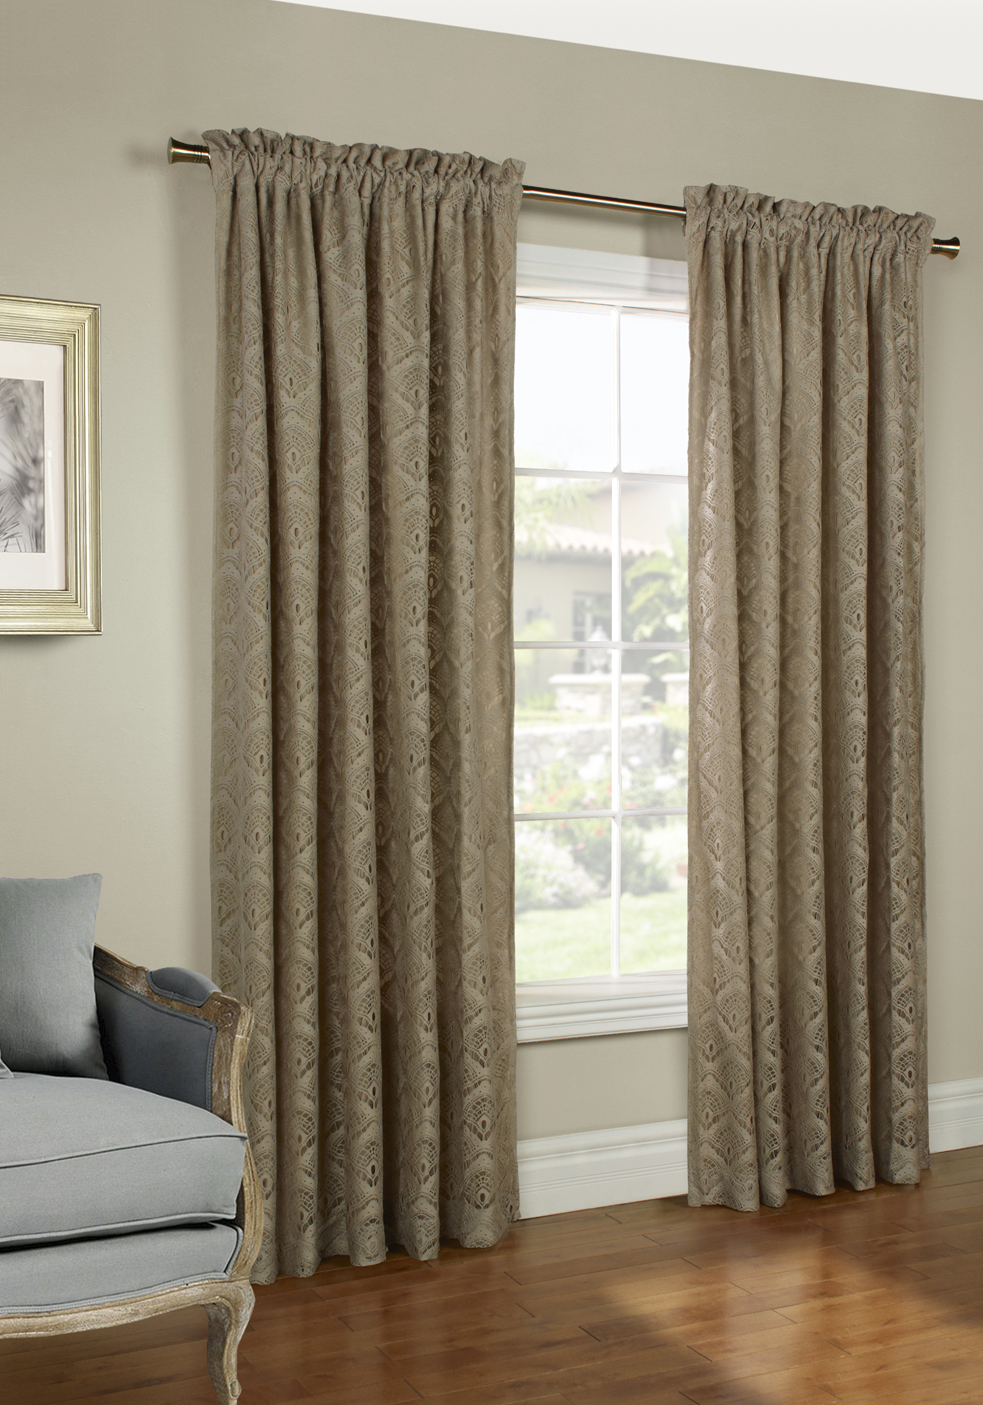 curtains lace patterned floral